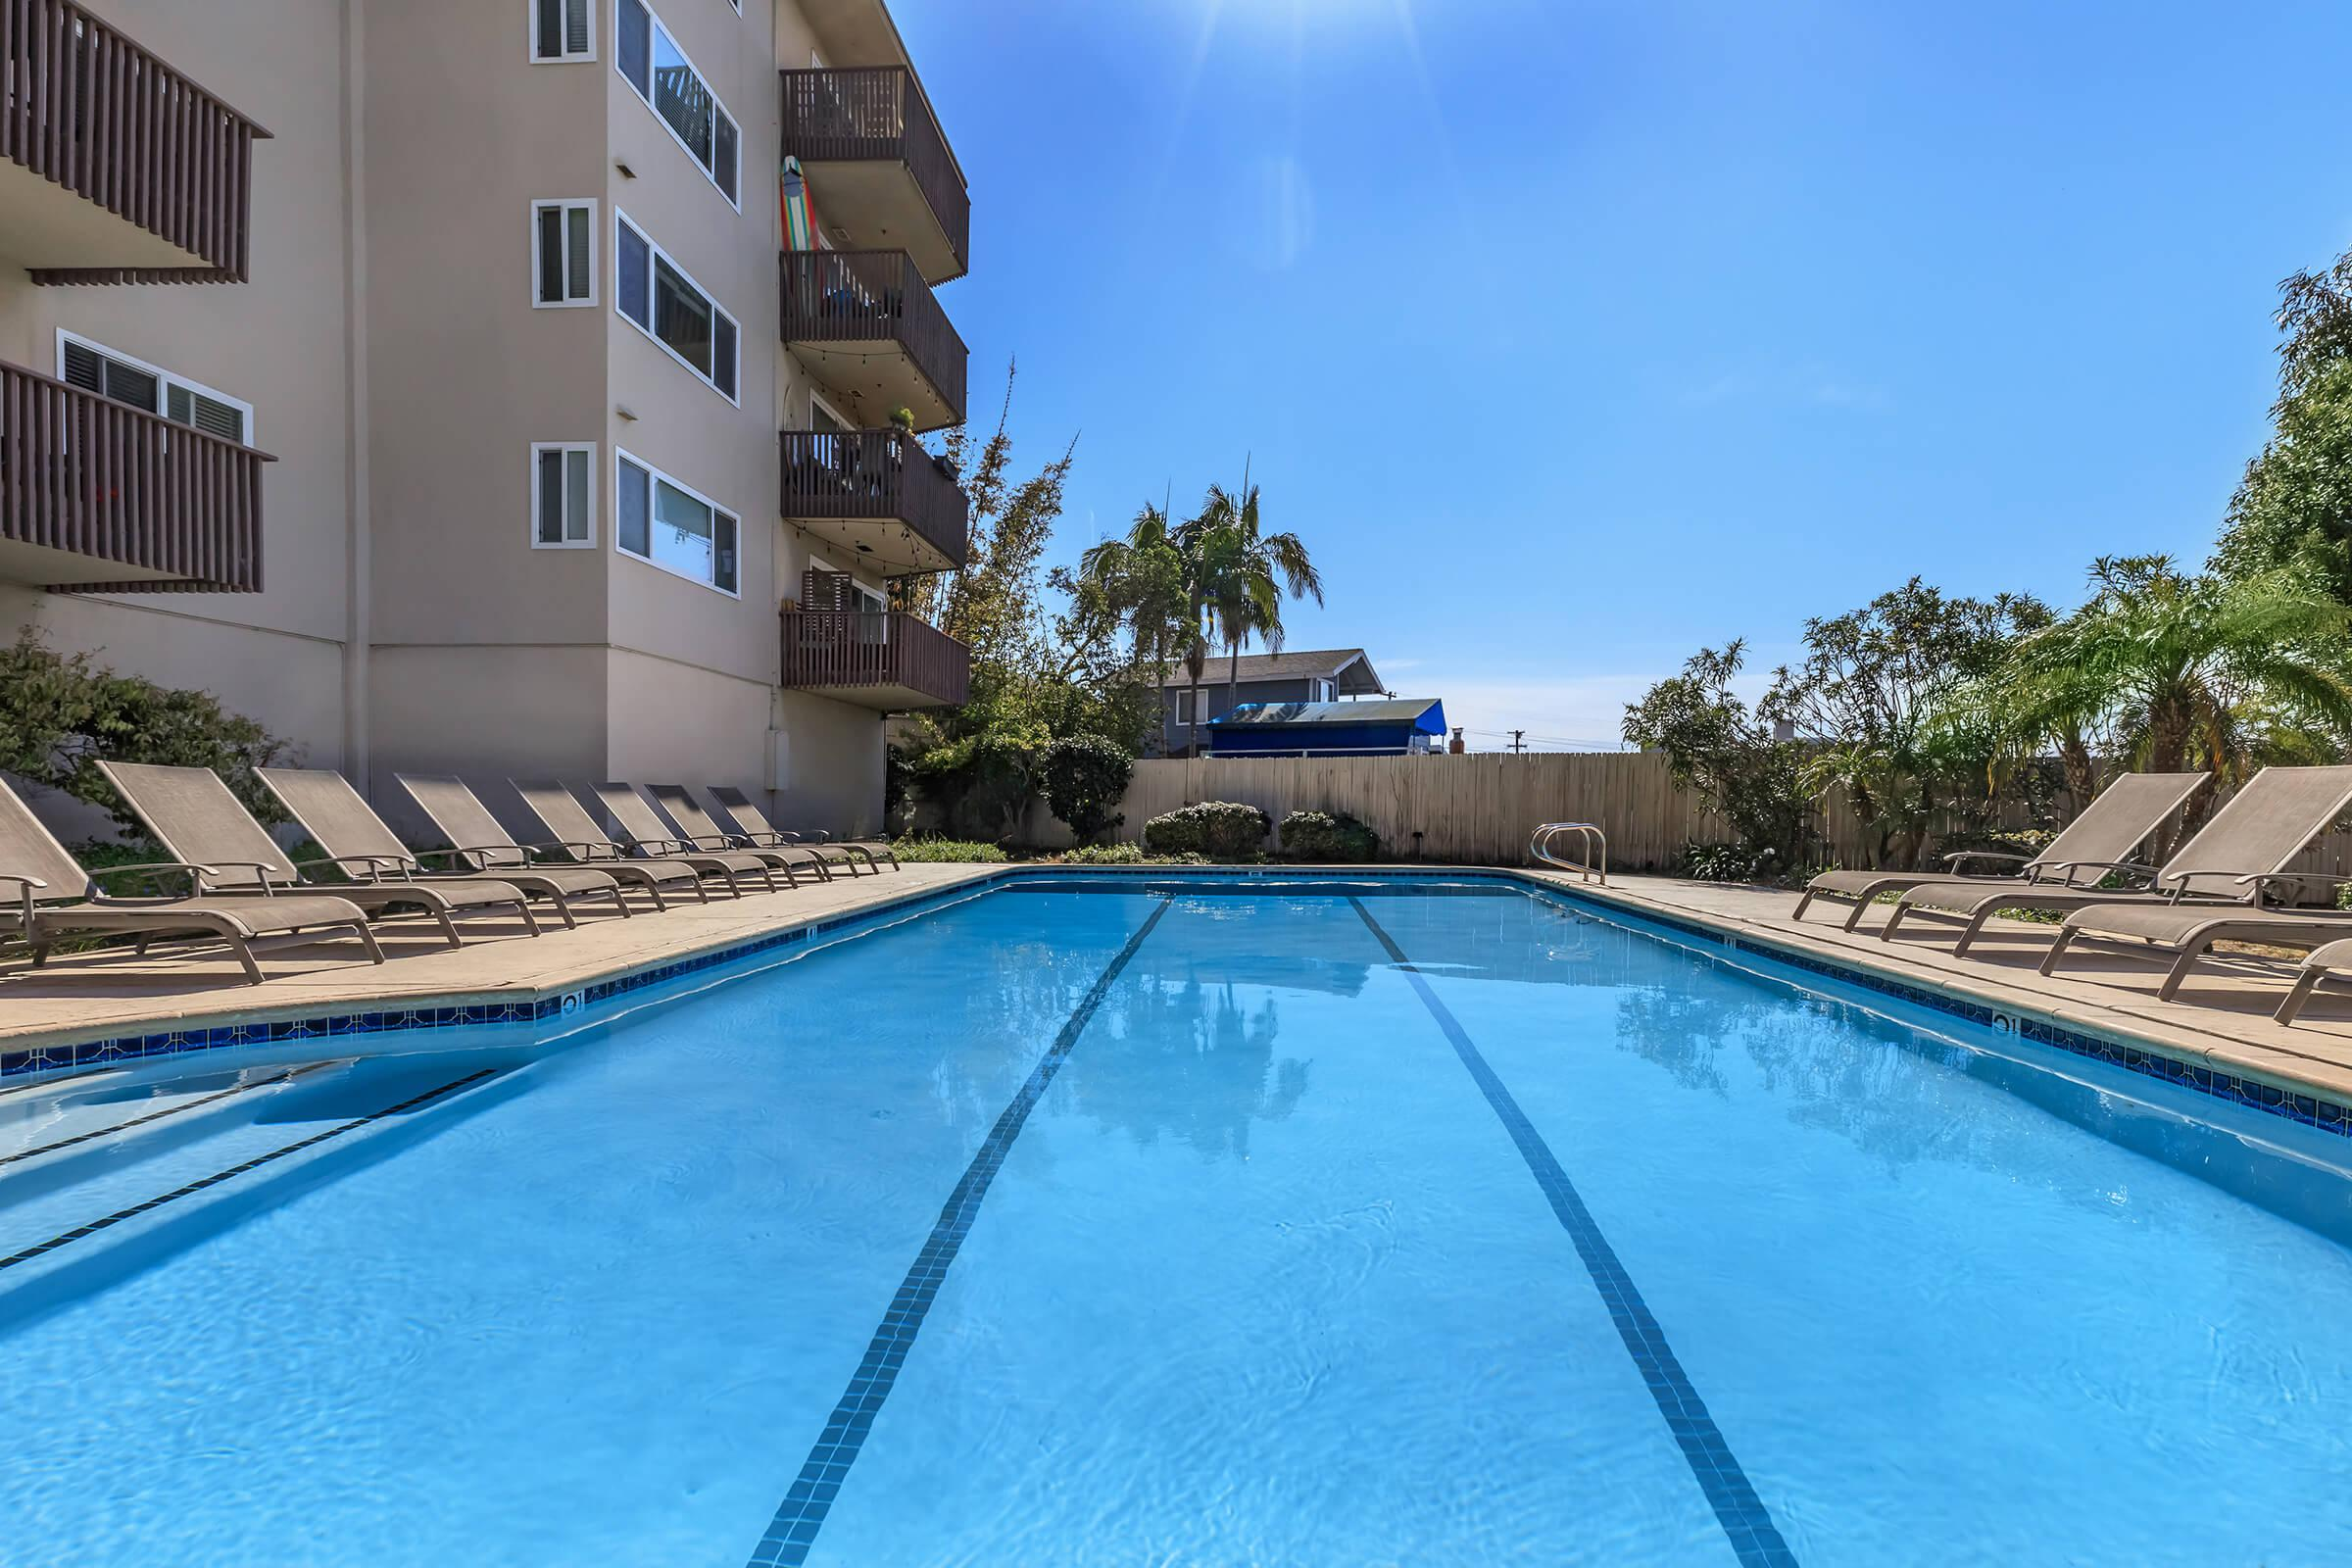 Kick back and relax poolside at Casa Hermosa